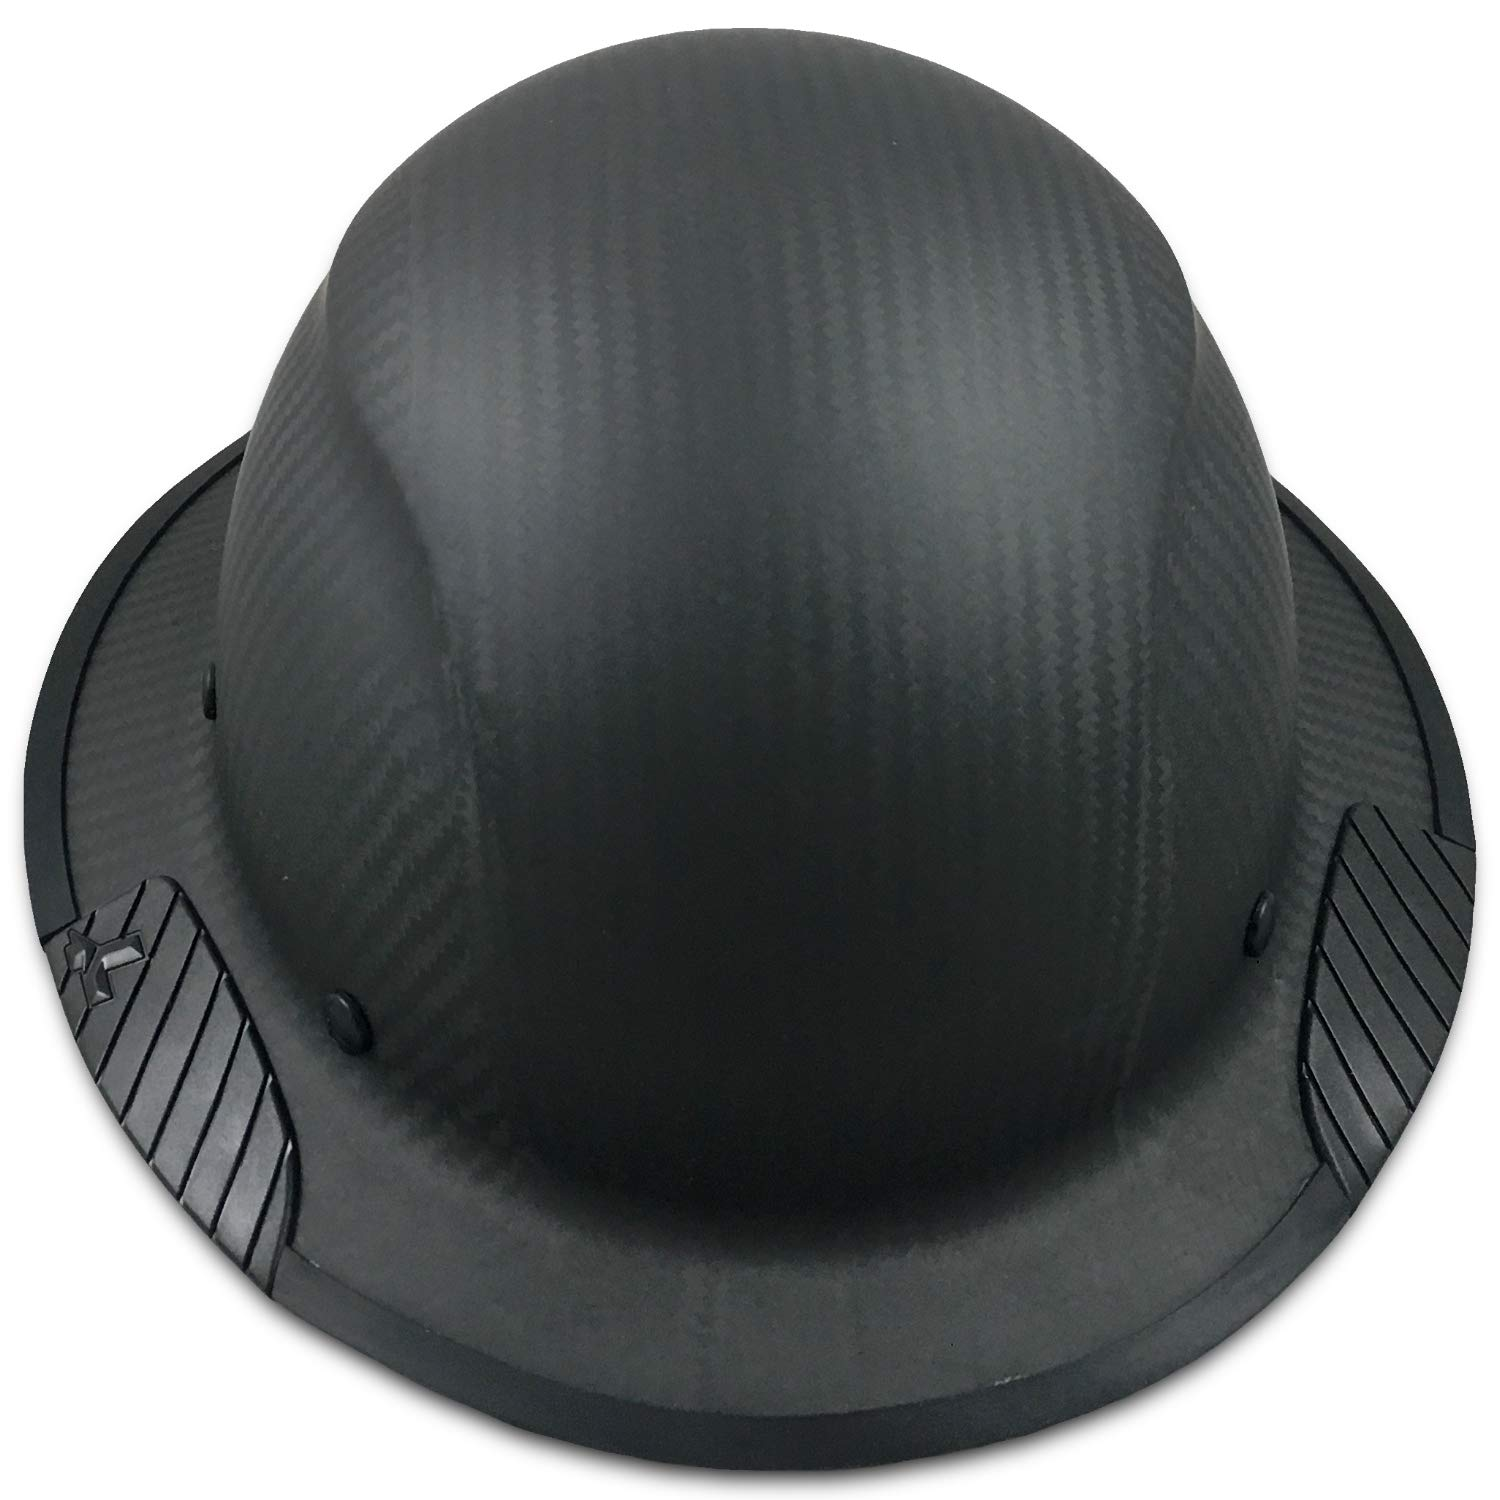 Texas America Safety Company Actual Carbon Fiber Material Hard Hat with Hard Hat Tote- Full Brim, Matte Black with Protective Edging by Texas America Safety Company (Image #5)